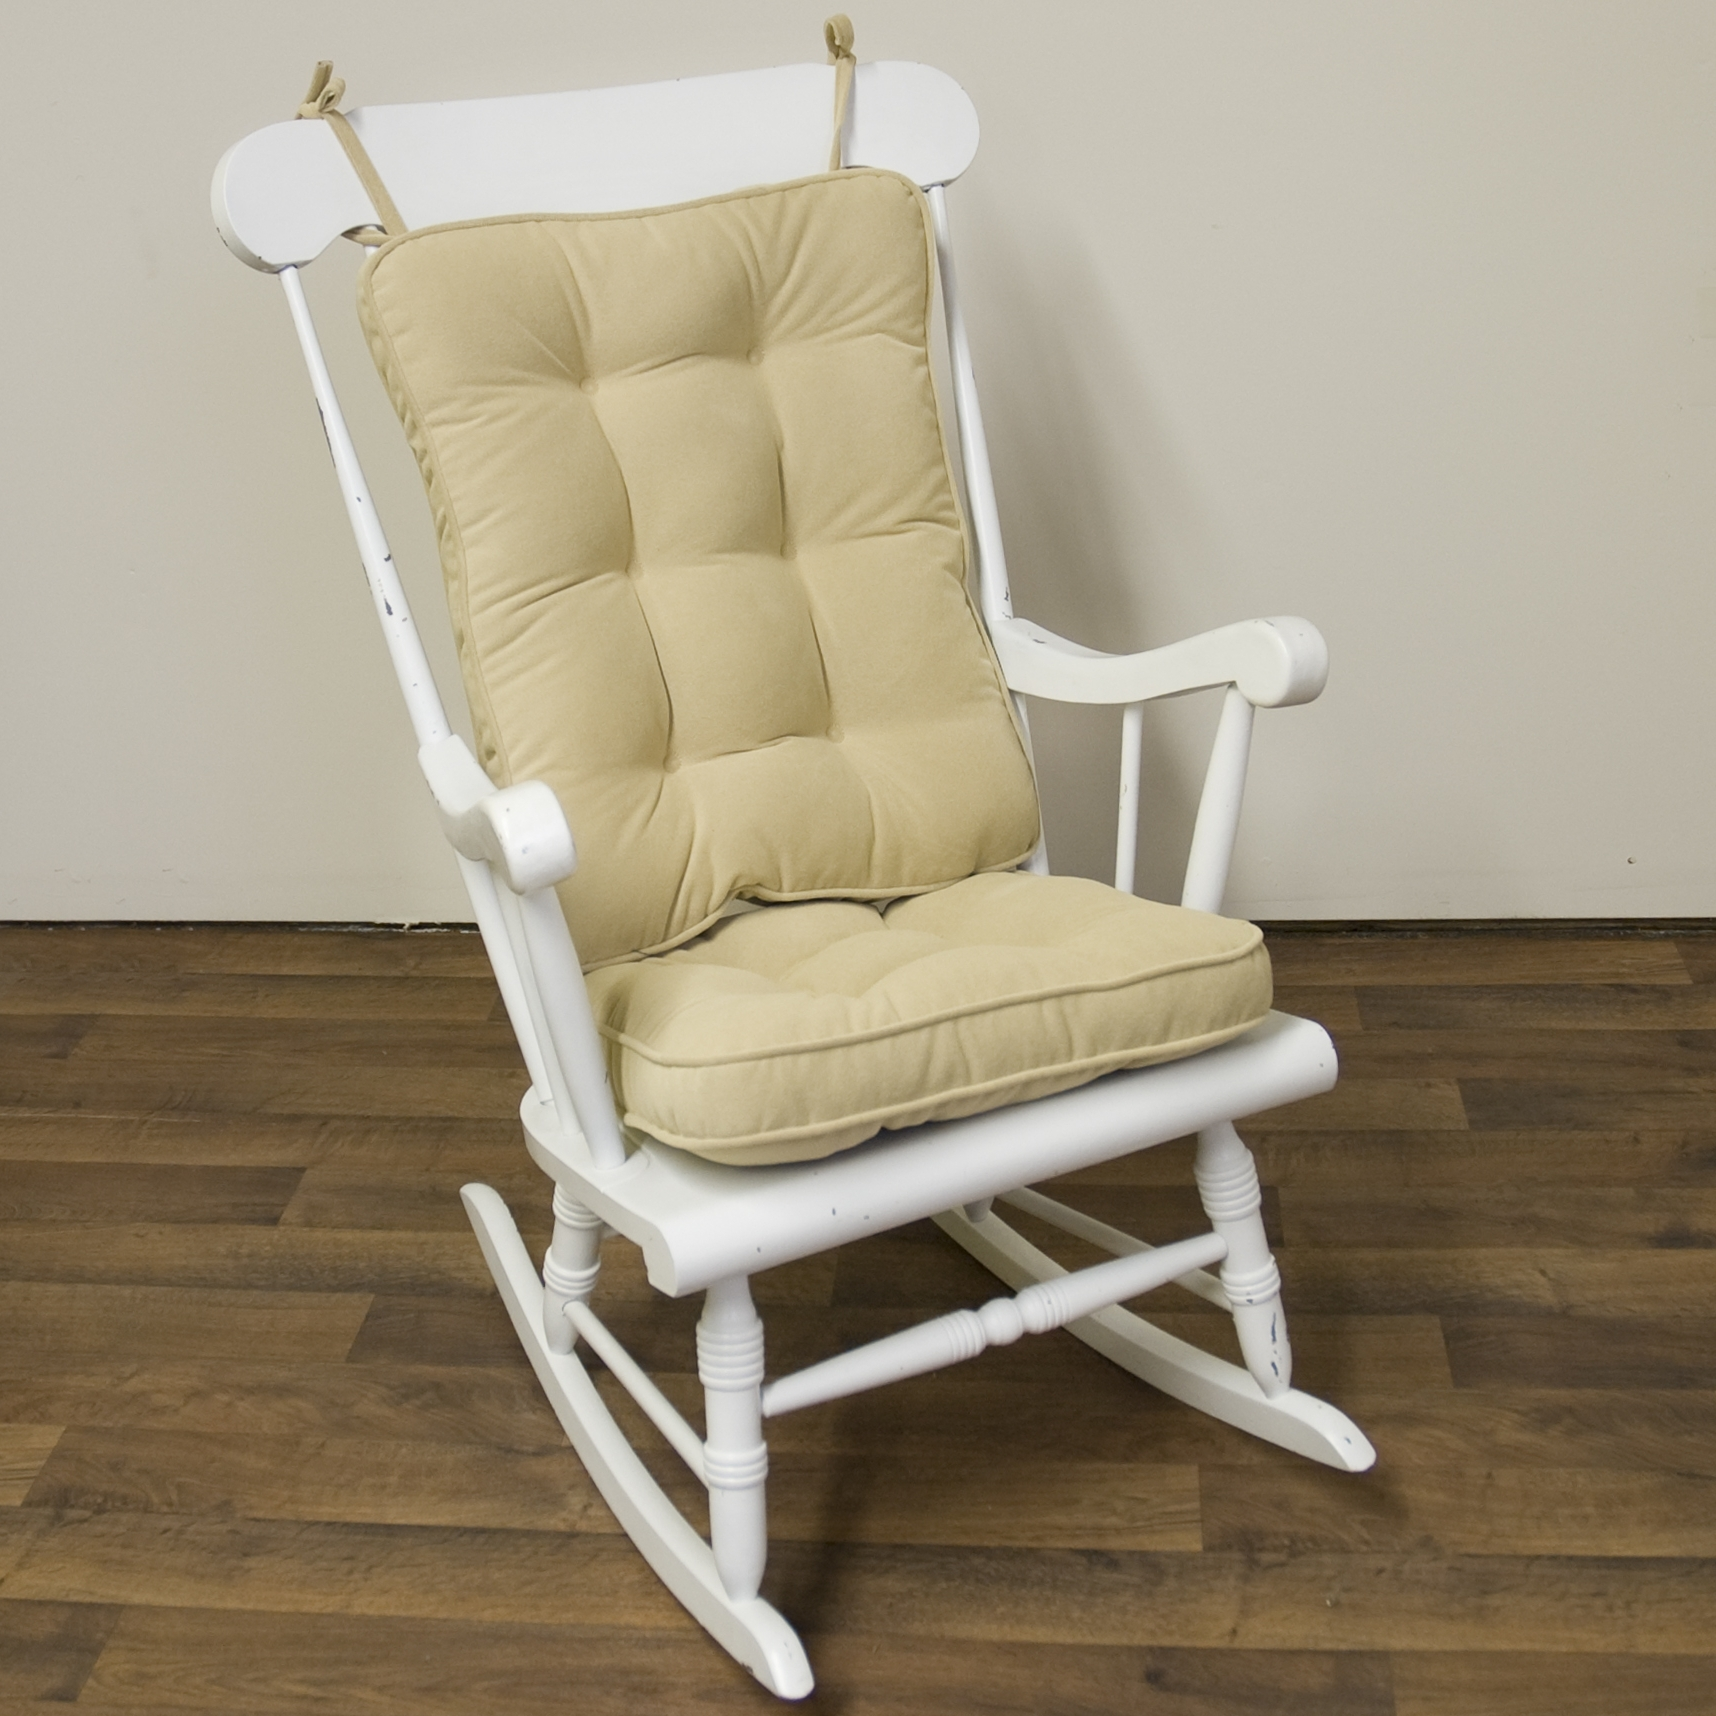 Lowes Rocking Chairs In Recent Livingroom : Lowes White Wooden Rocking Chairs Outdoor Wood Chair (View 11 of 20)